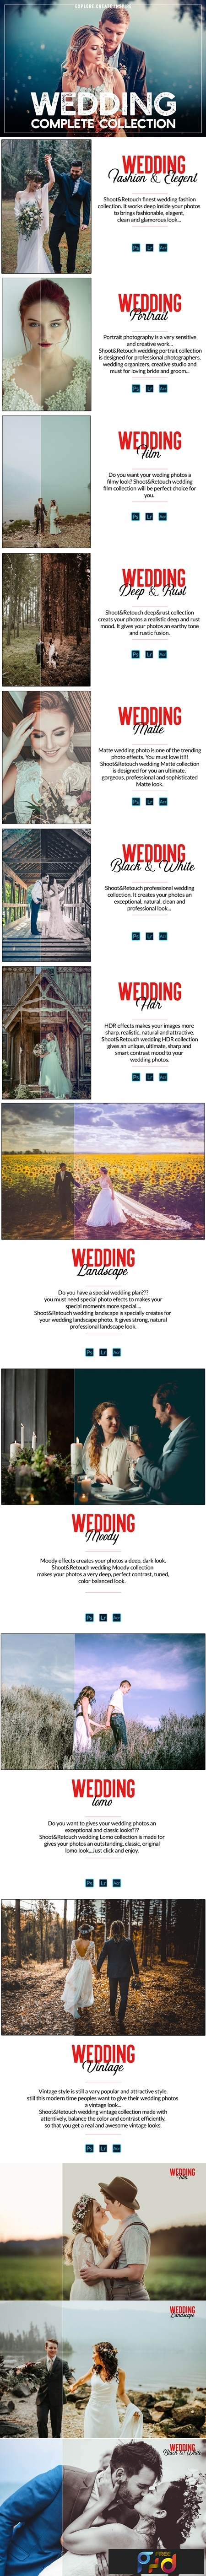 Wedding Complete Collection LR PS ACR 2947791 1